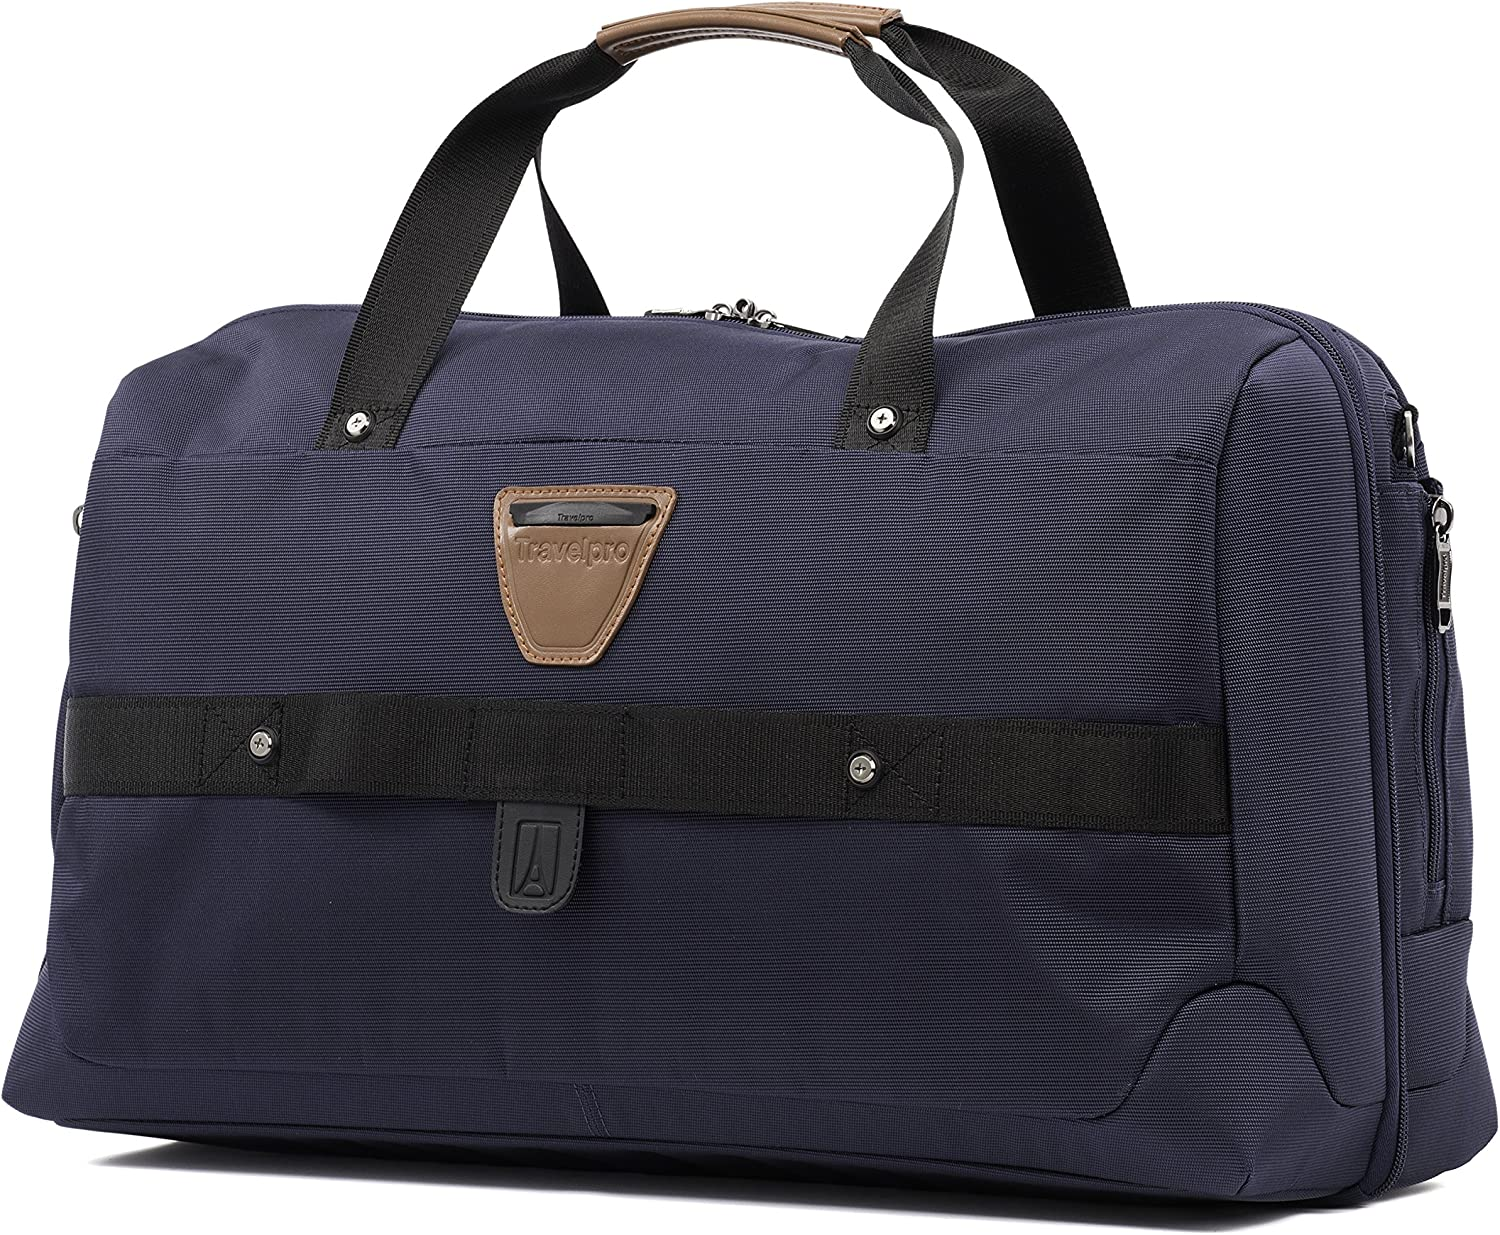 Travelpro Crew 11-Smart Carry-On Suiter Duffel Bag with USB Port Mahogany Brown